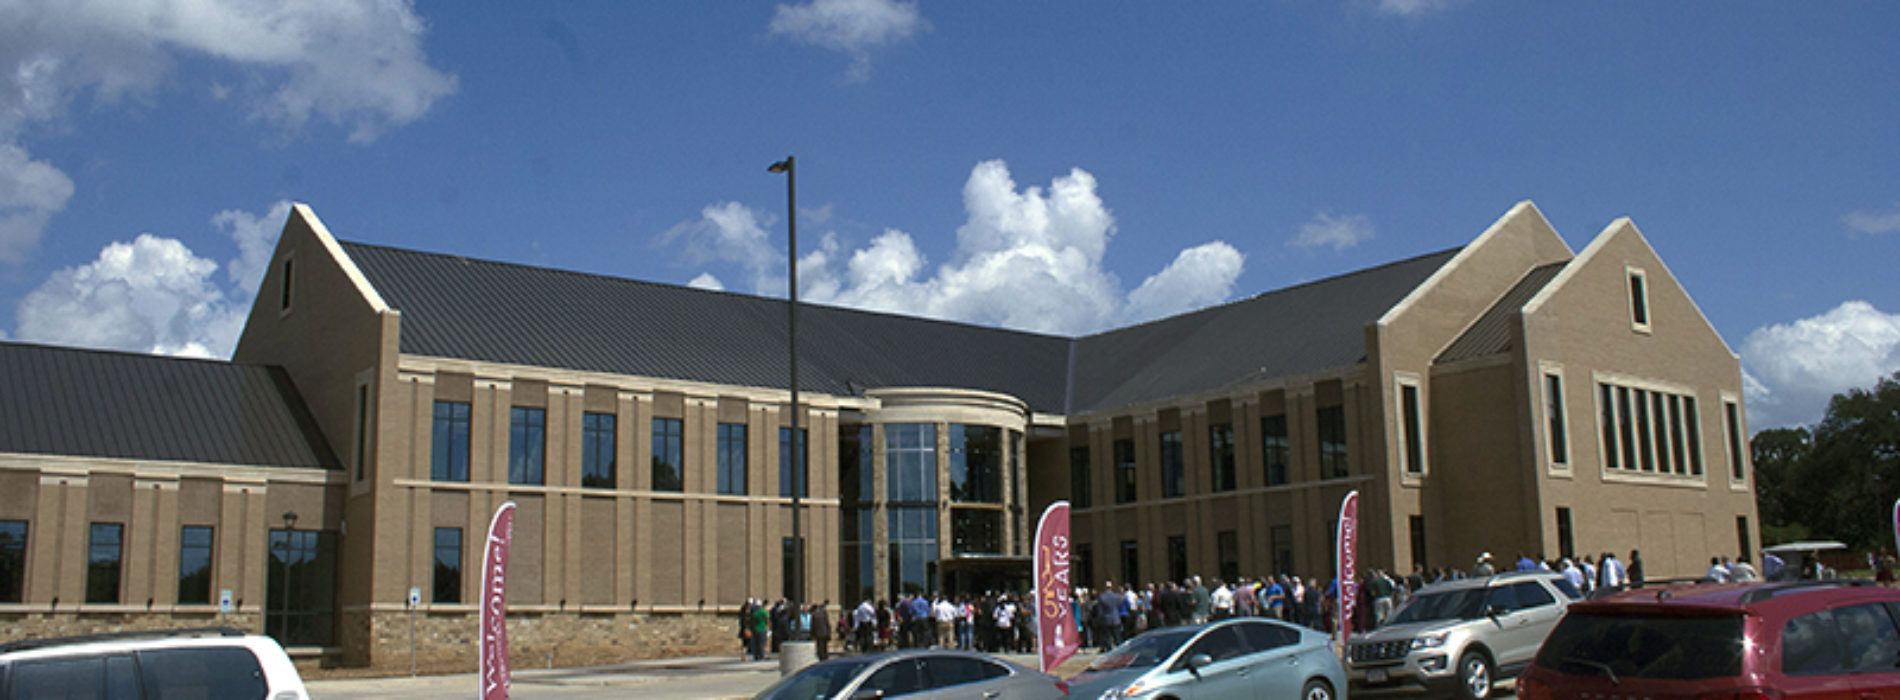 More than 500 Attend Nursing Building Open House